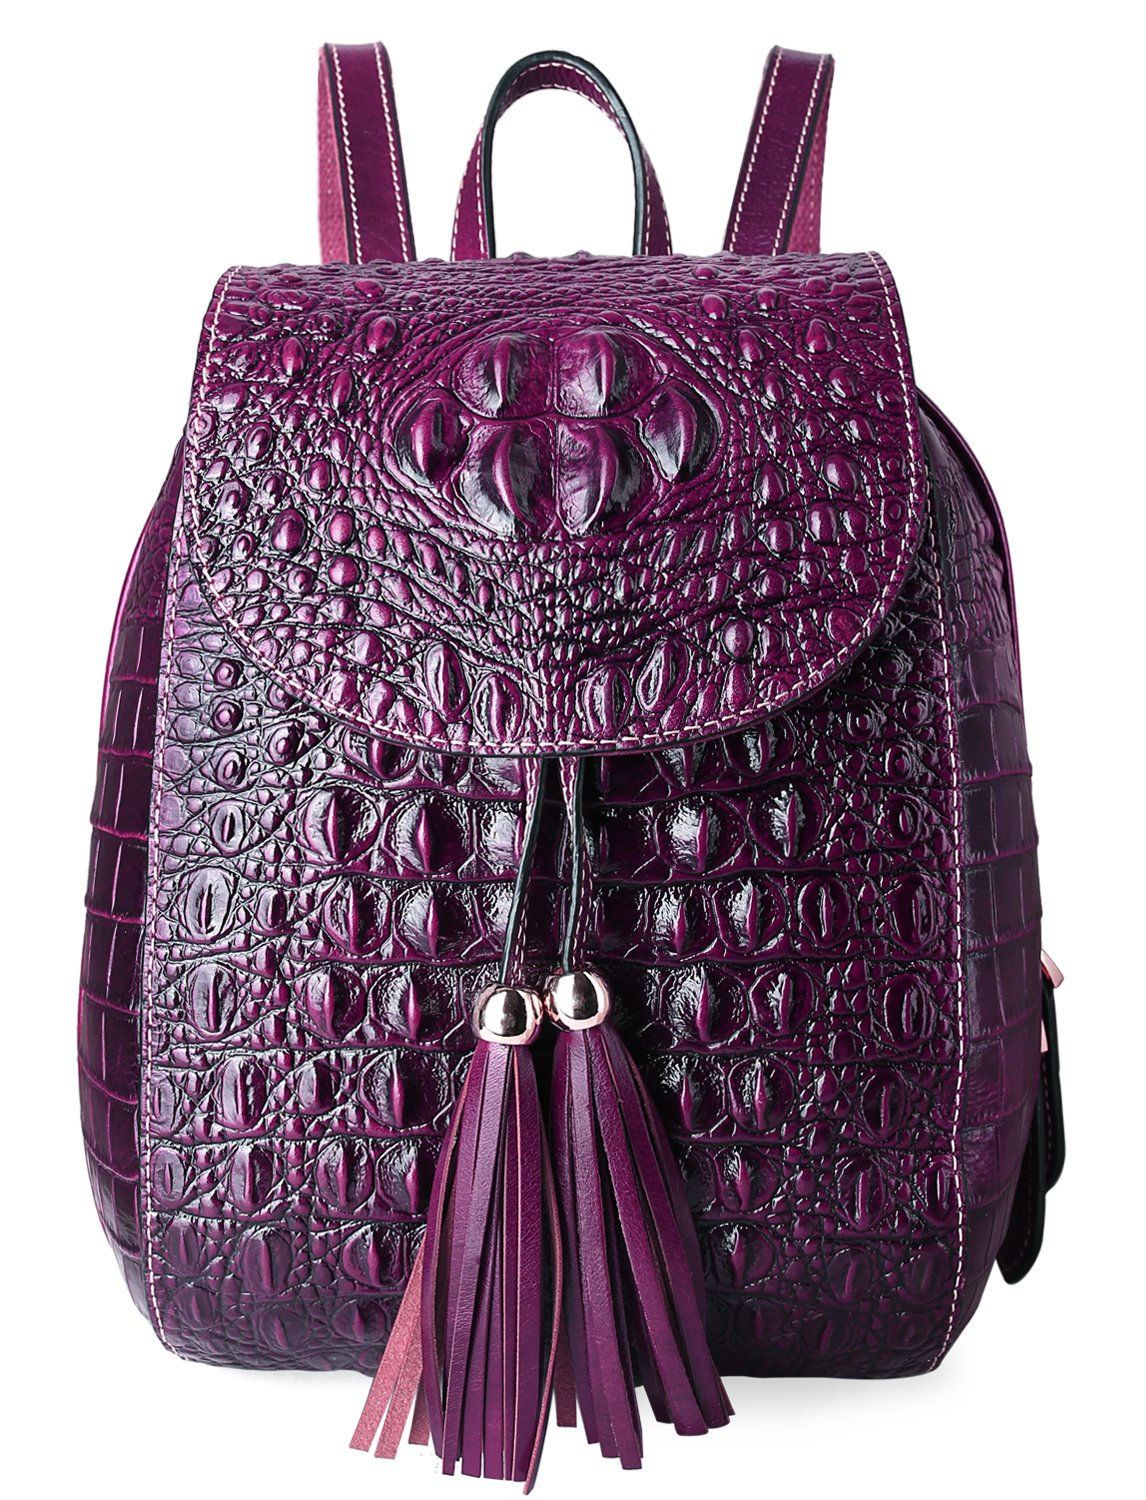 Pifuren Women Fashion Genuine Leather Backpacks Crocodile Bag (E76810, Violet)